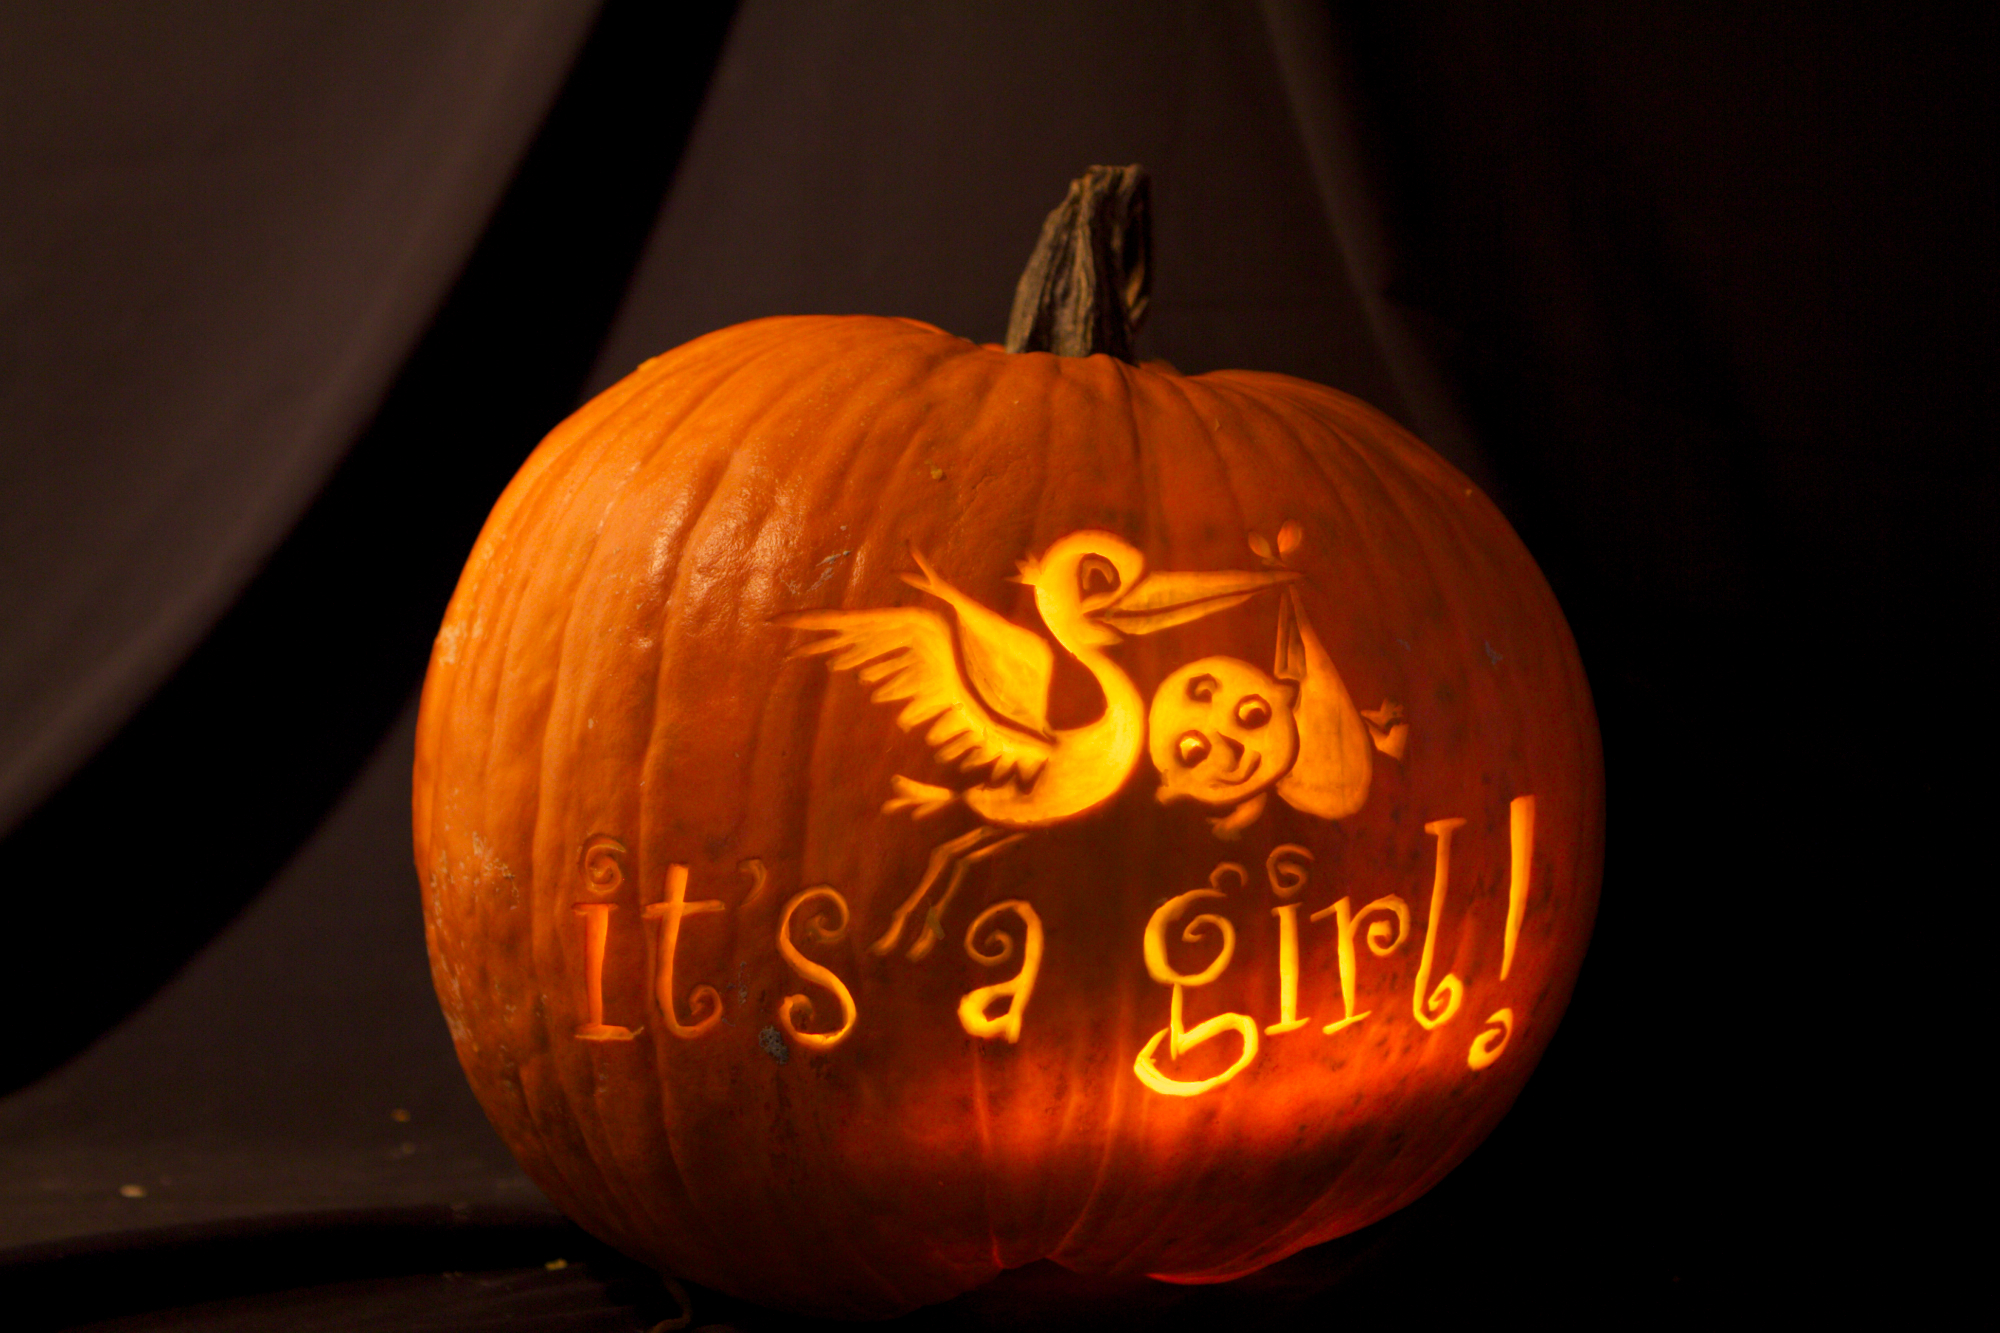 Large pumpkin with text and graphics.